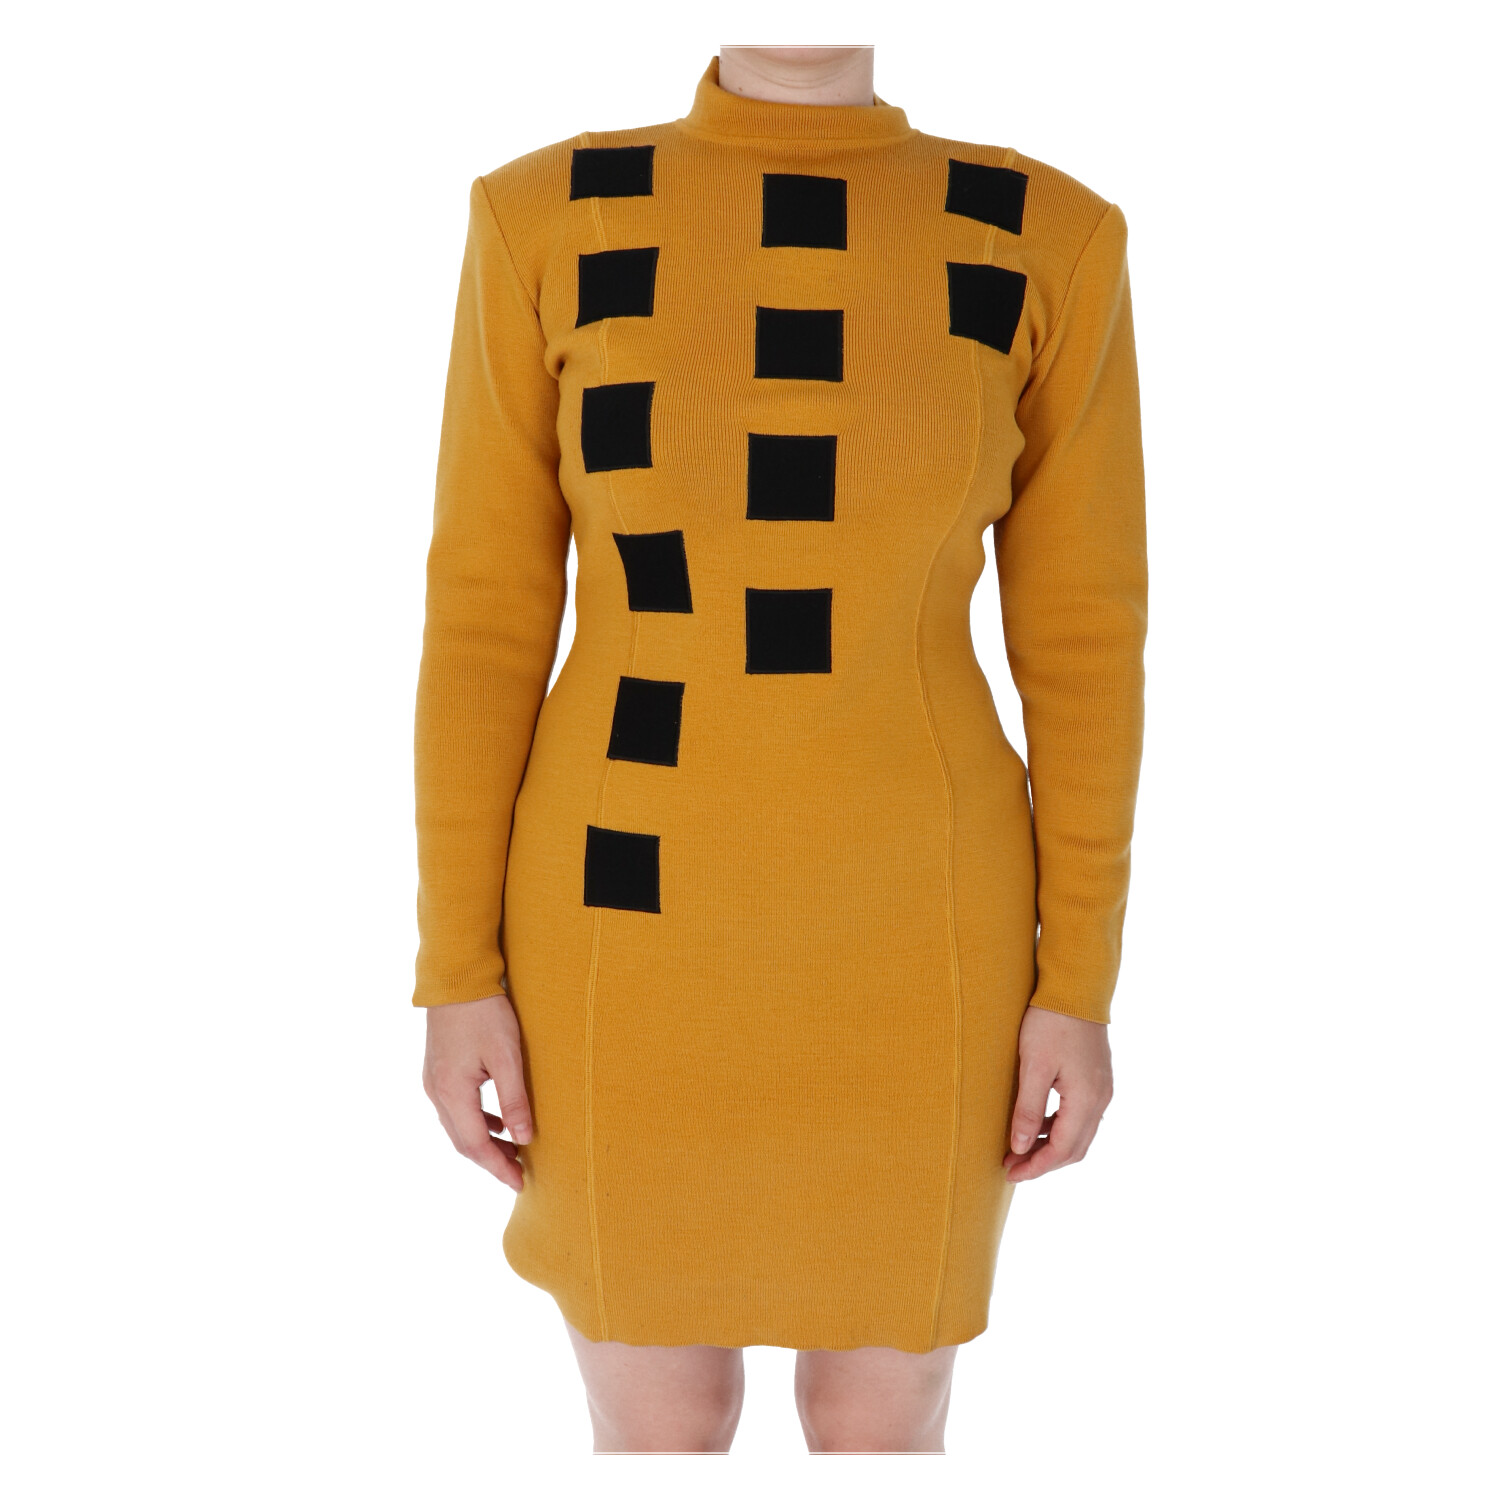 Dior Yellow Knitted Sweater Dress